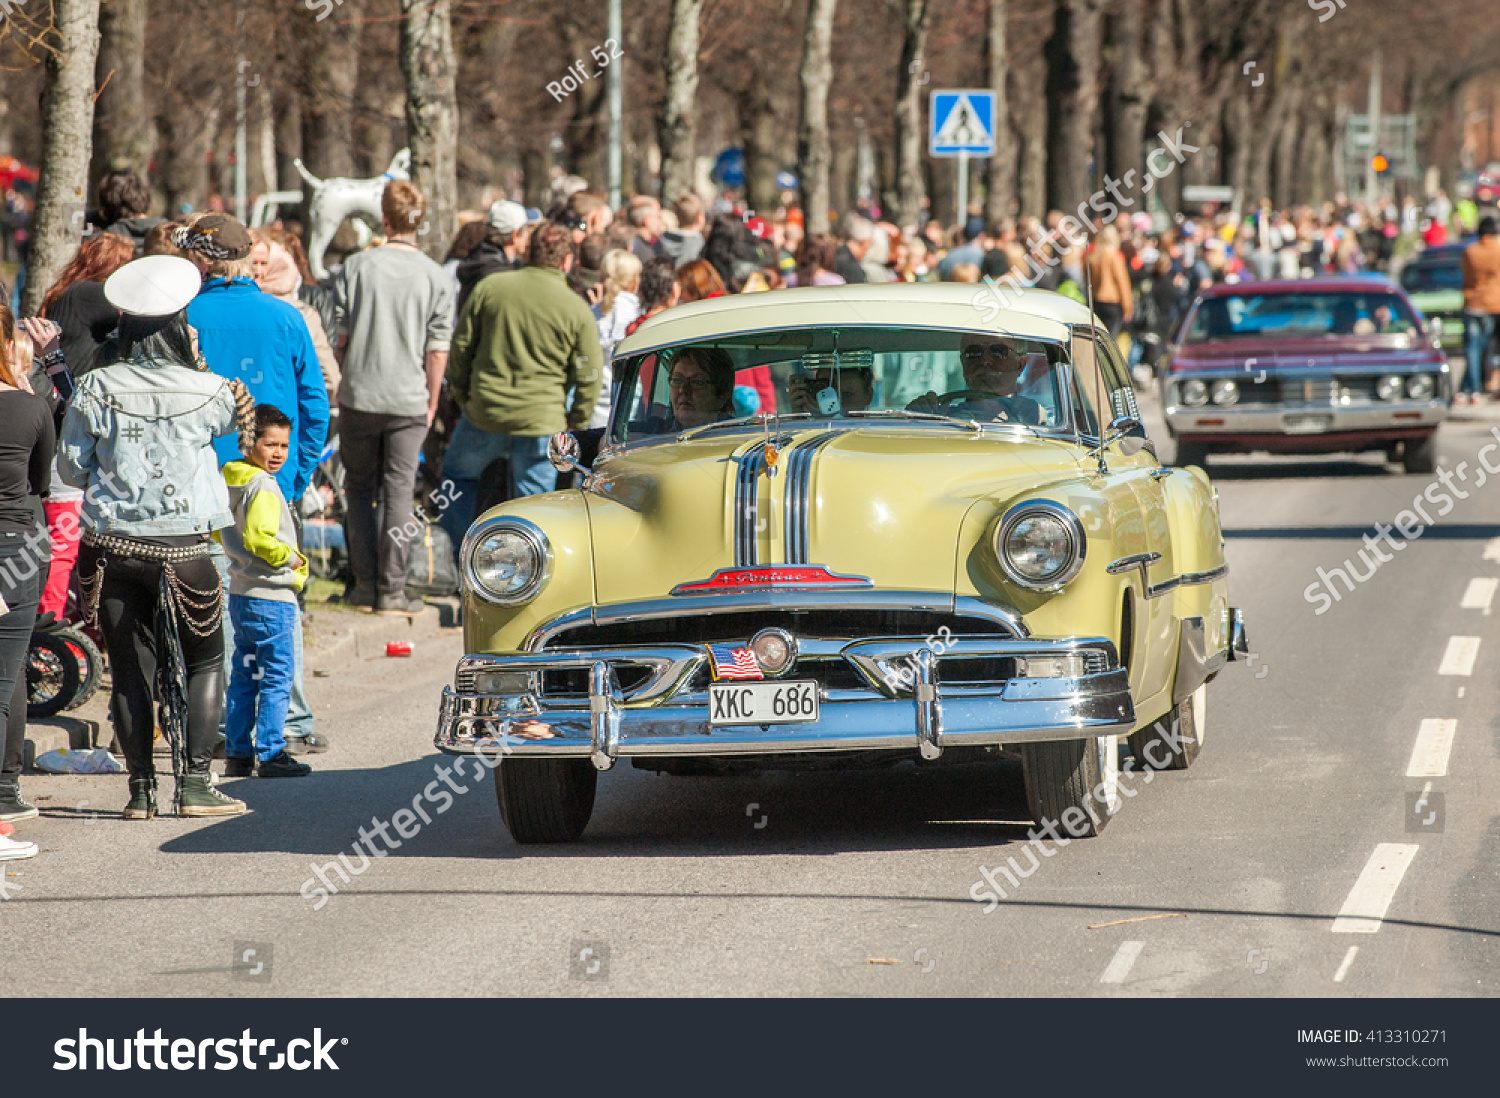 Norrkoping Sweden May 1 1953 Pontiac Stock Photo Edit Now Chieftain Sedan Catali At Classic Car Parade Celebrates